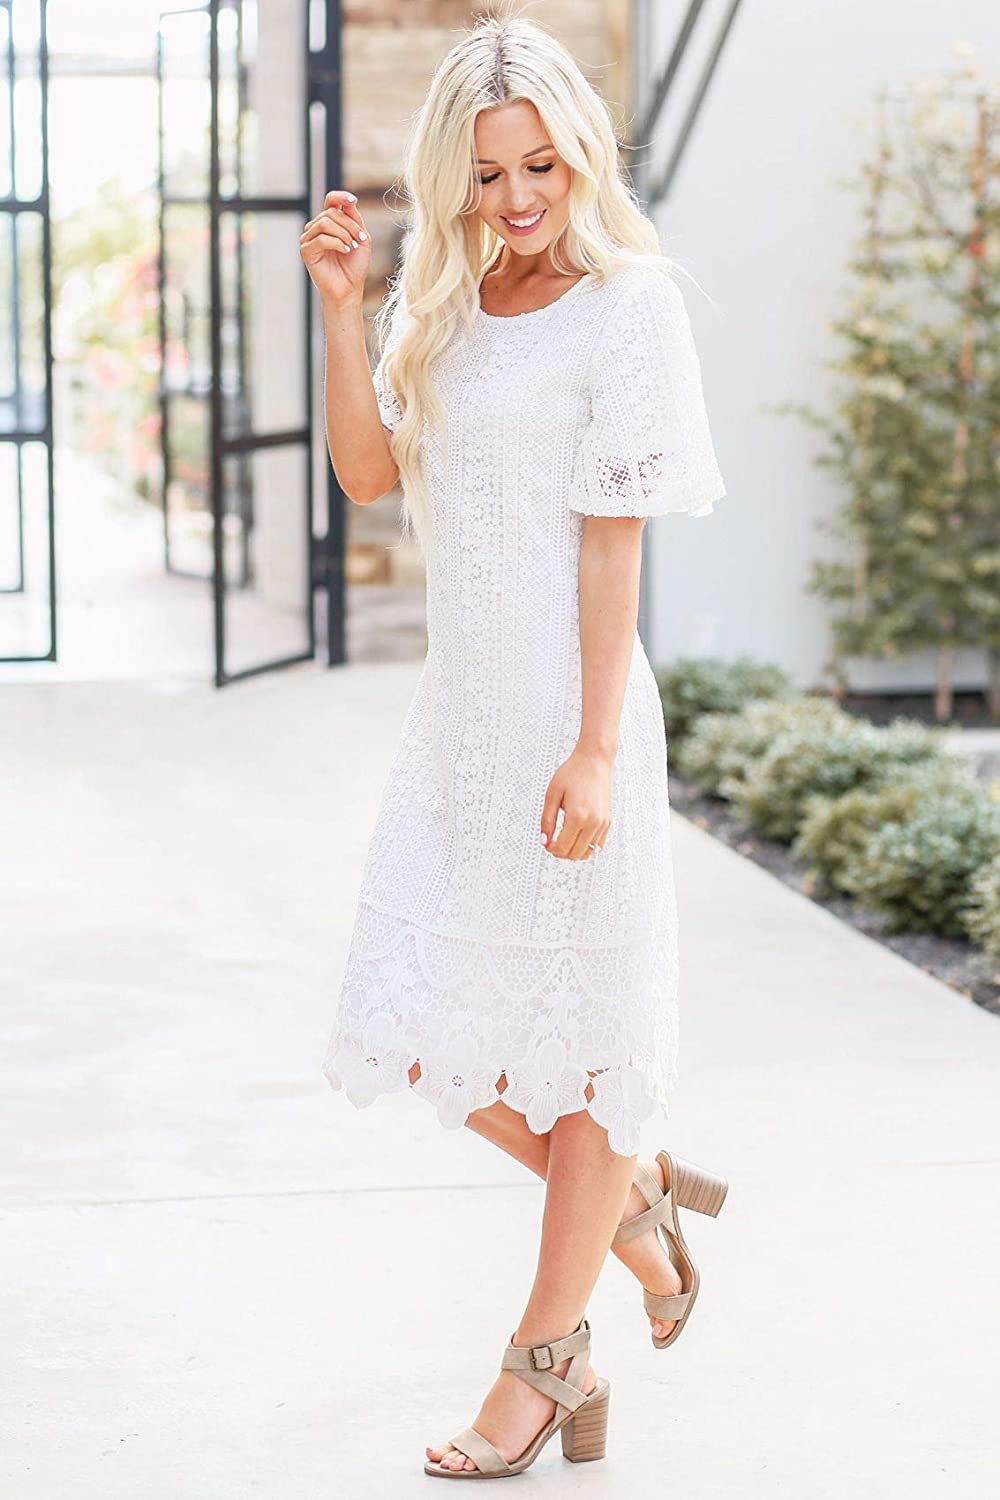 Old Fashioned Dresses | Old Dress Styles Mikarose Womens Nora Modest Crochet Lace Overlay Flutter-Sleeve A-Line Dress $64.99 AT vintagedancer.com